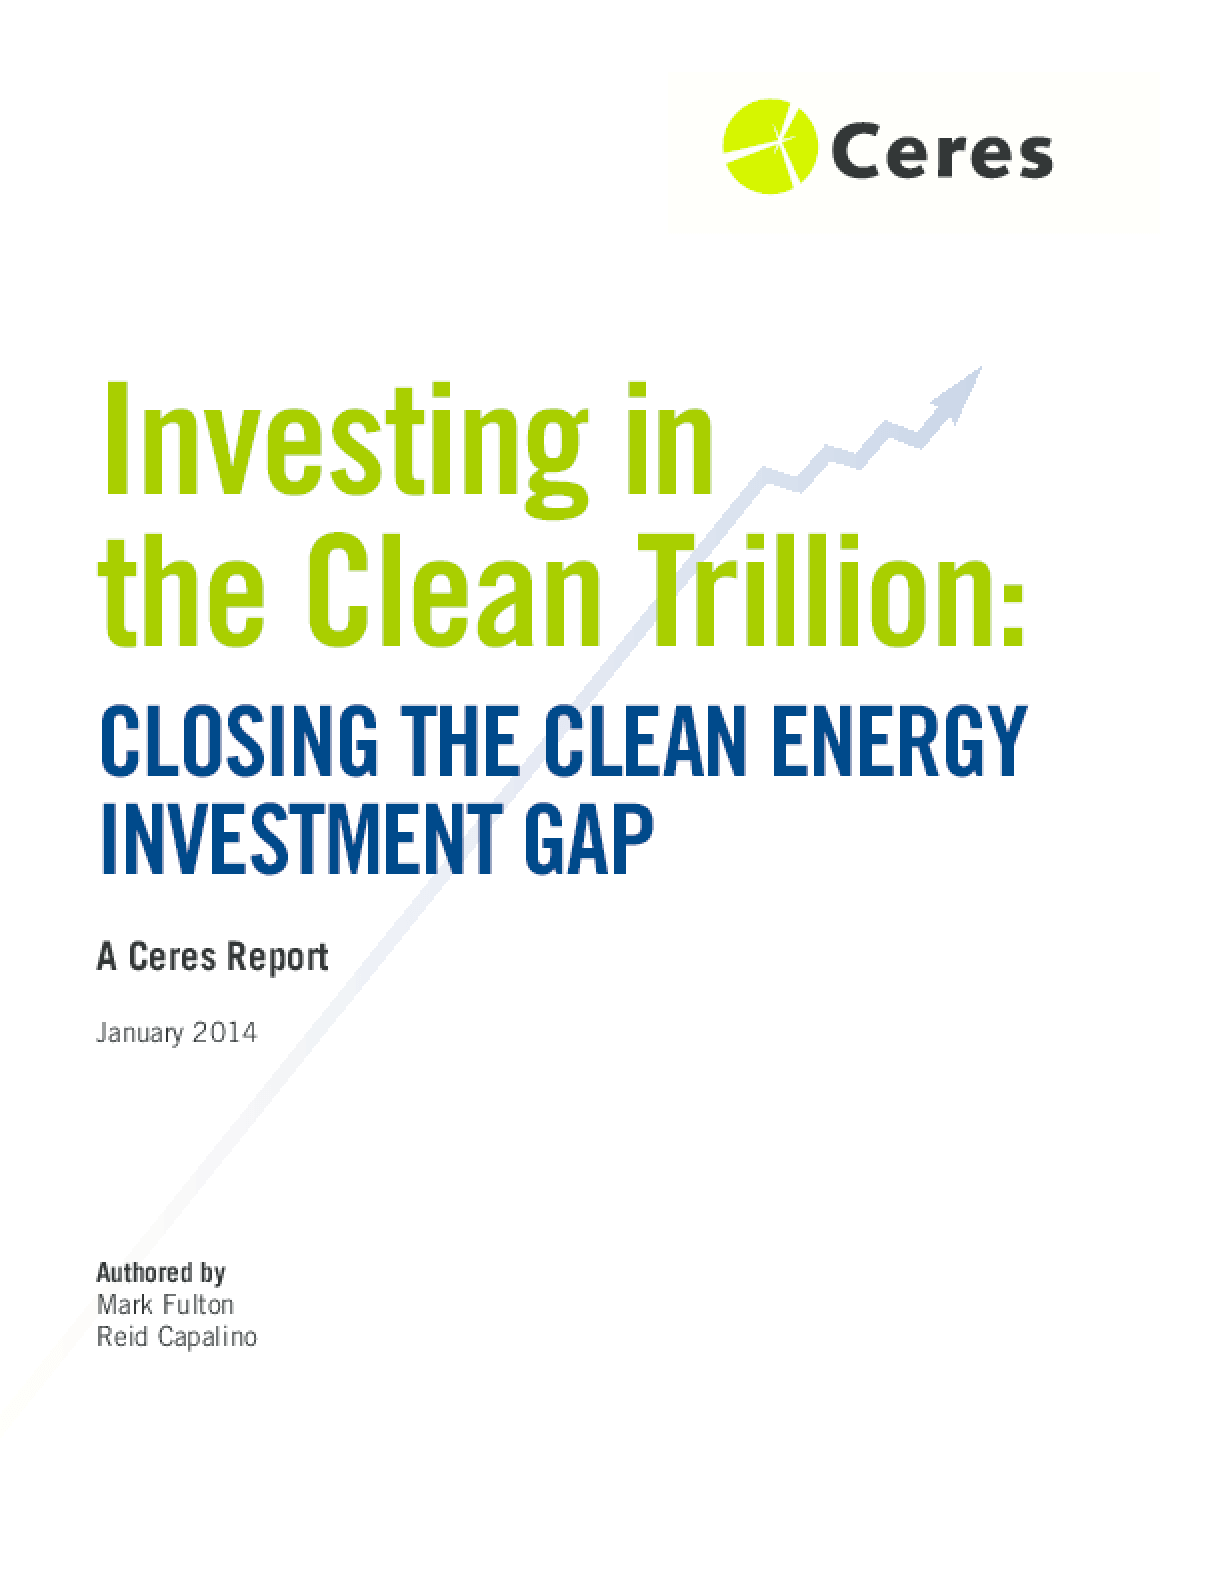 Investing in the Clean Trillion: Closing the Clean Energy Investment Gap